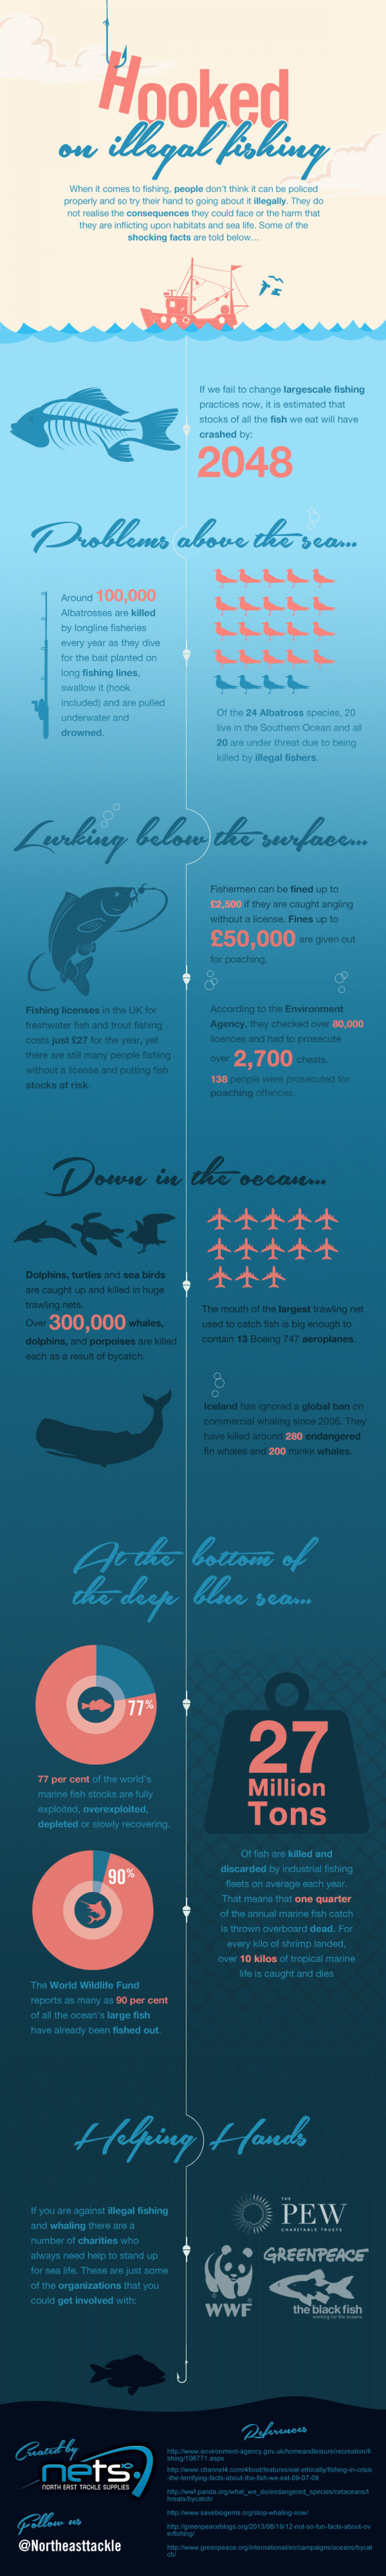 Hooked on Illegal Fishing Infographic